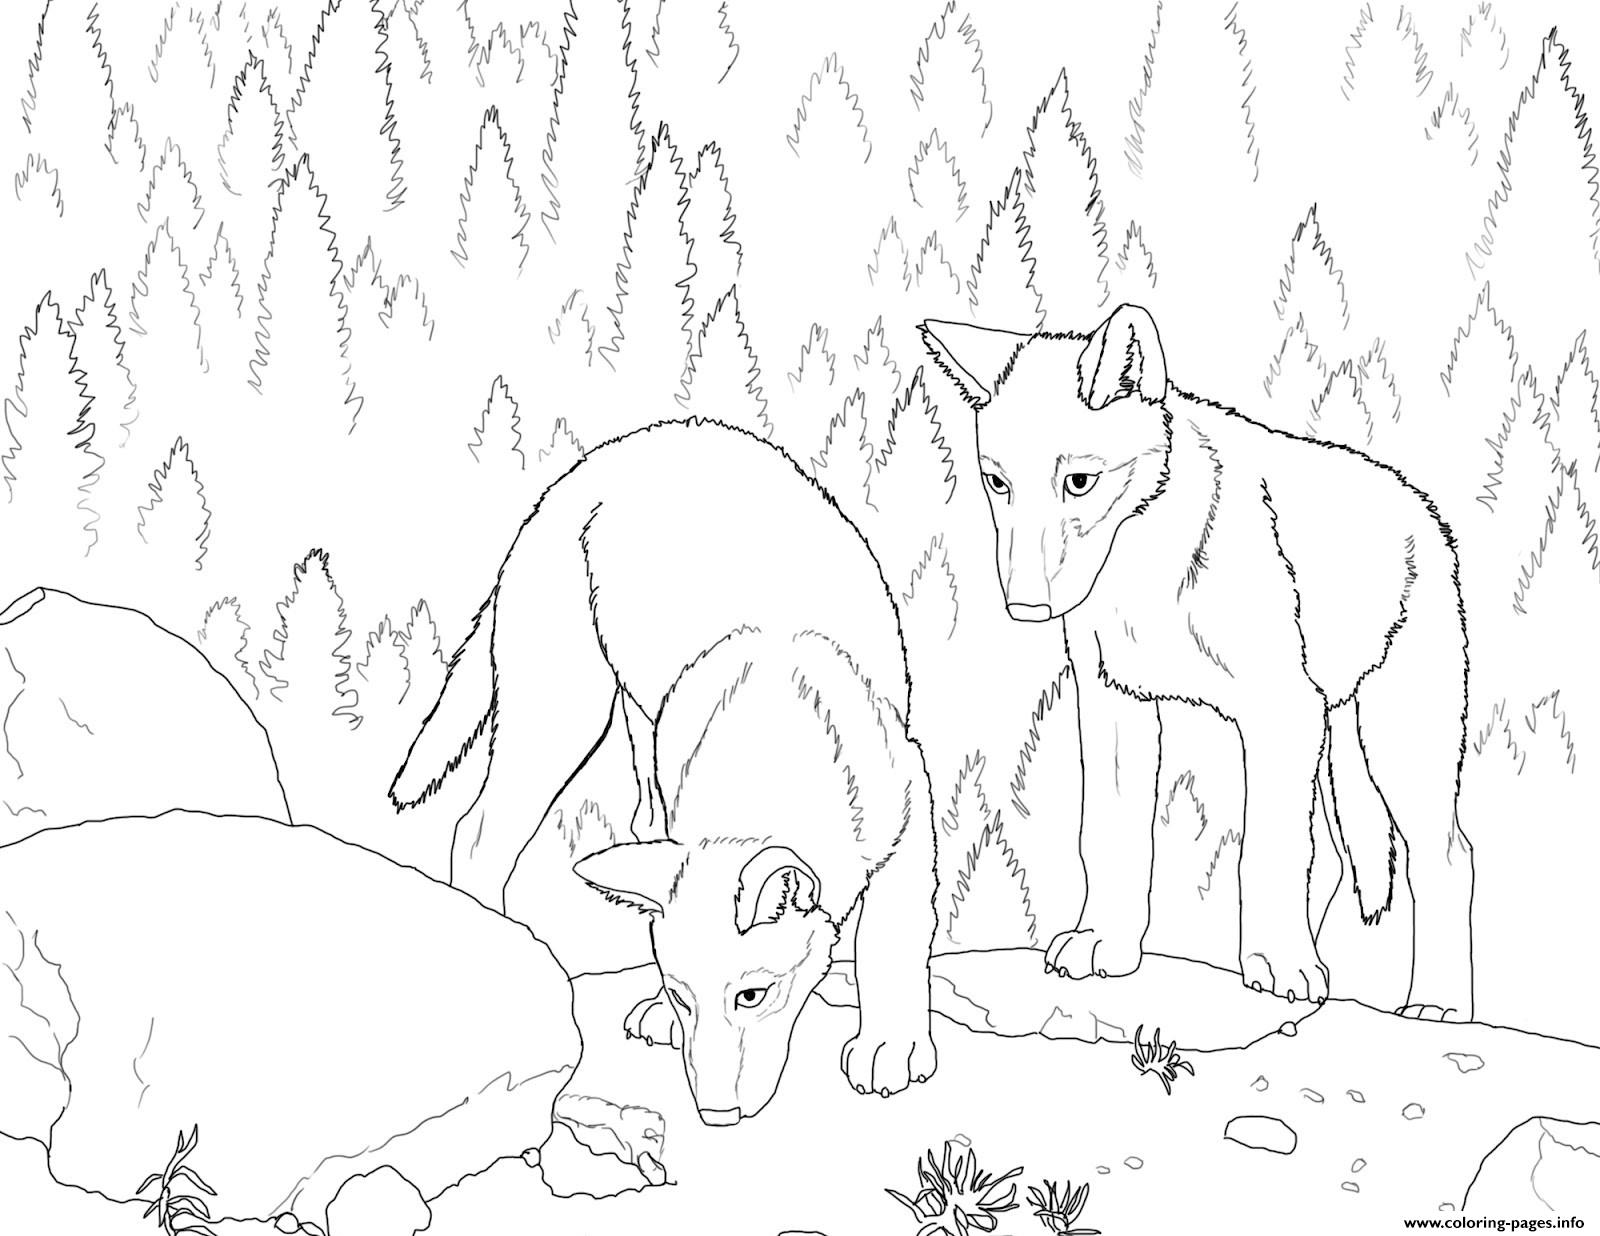 1600x1236 Wolf Pack Coloring Pages Funycoloring Adorable Realistic